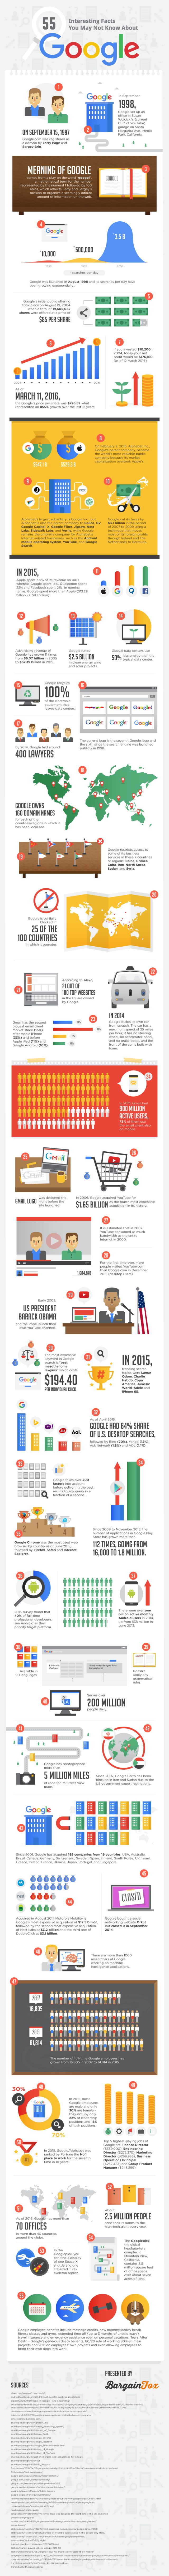 55 surprising facts about Google and why businesses should care